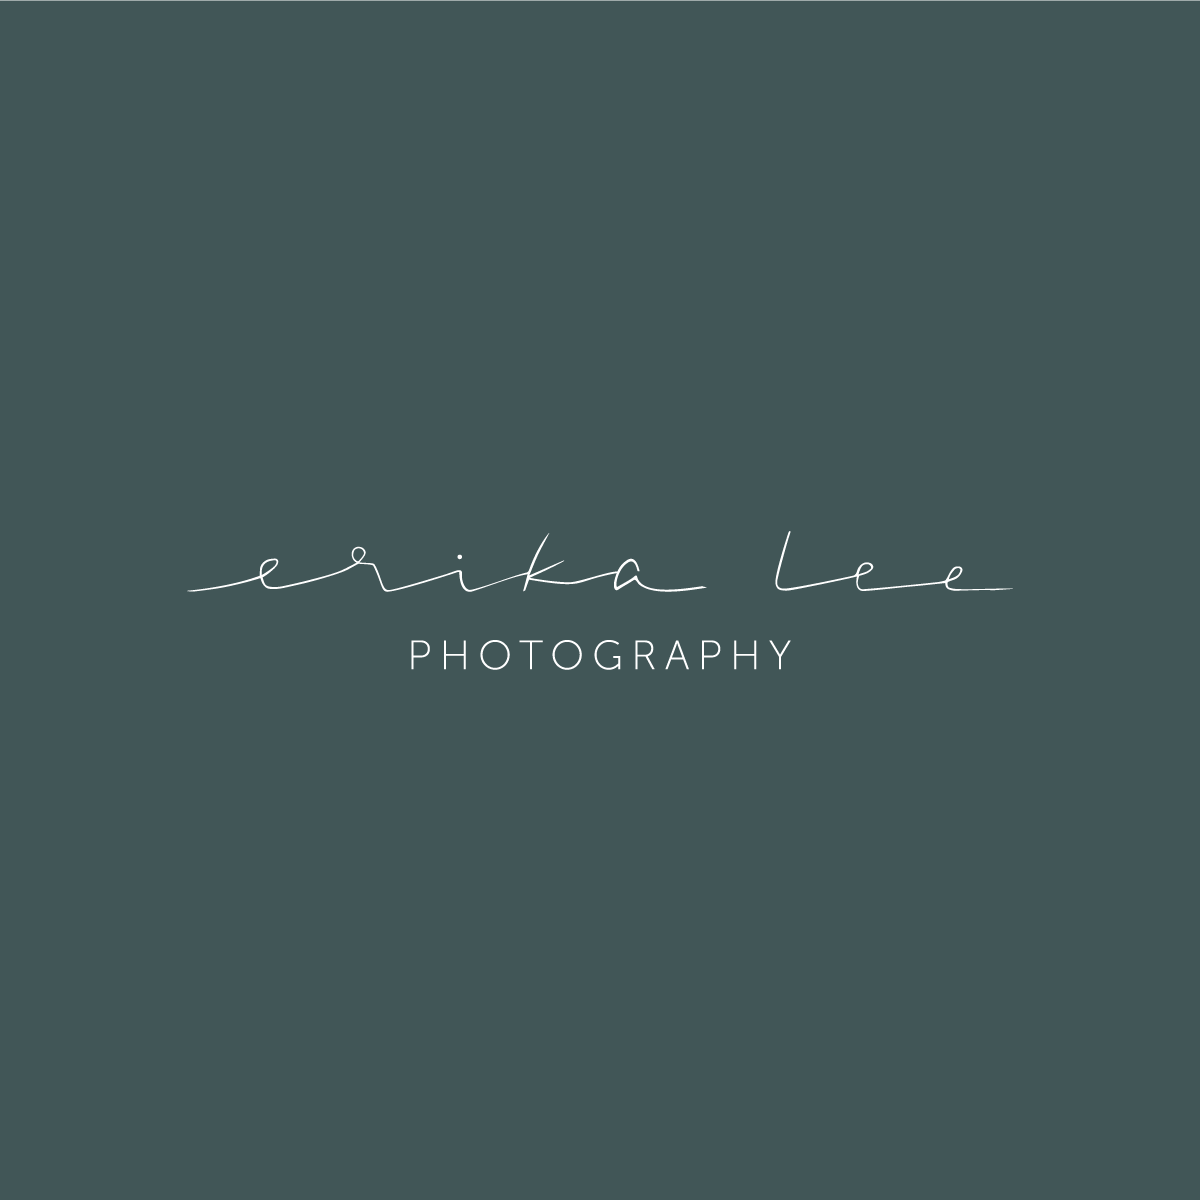 / branding for erika lee photography /